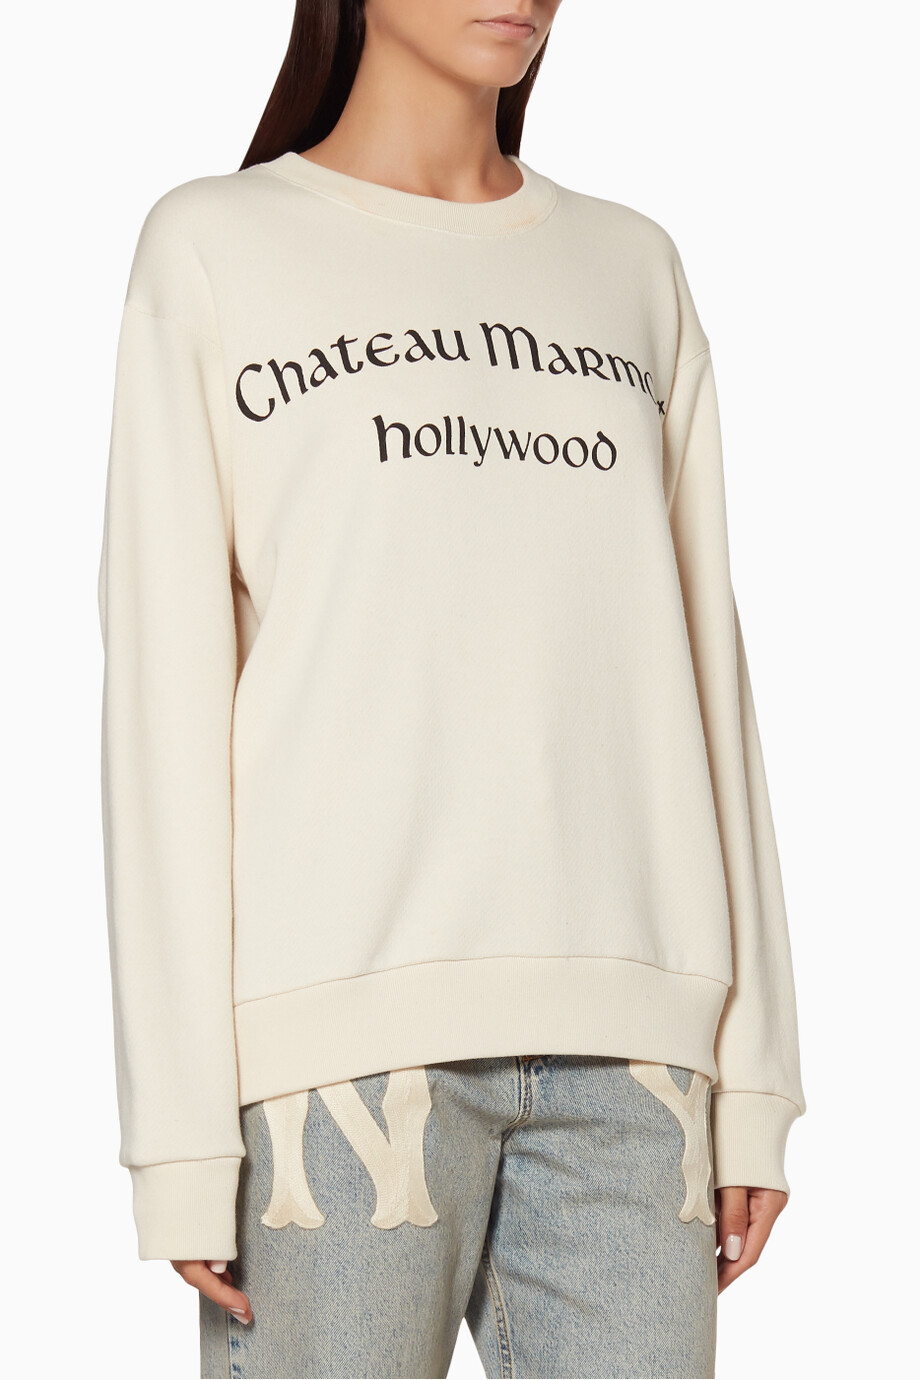 05163634835b Shop Gucci Neutral Off-White Oversized Chateau Marmont Sweatshirt ...